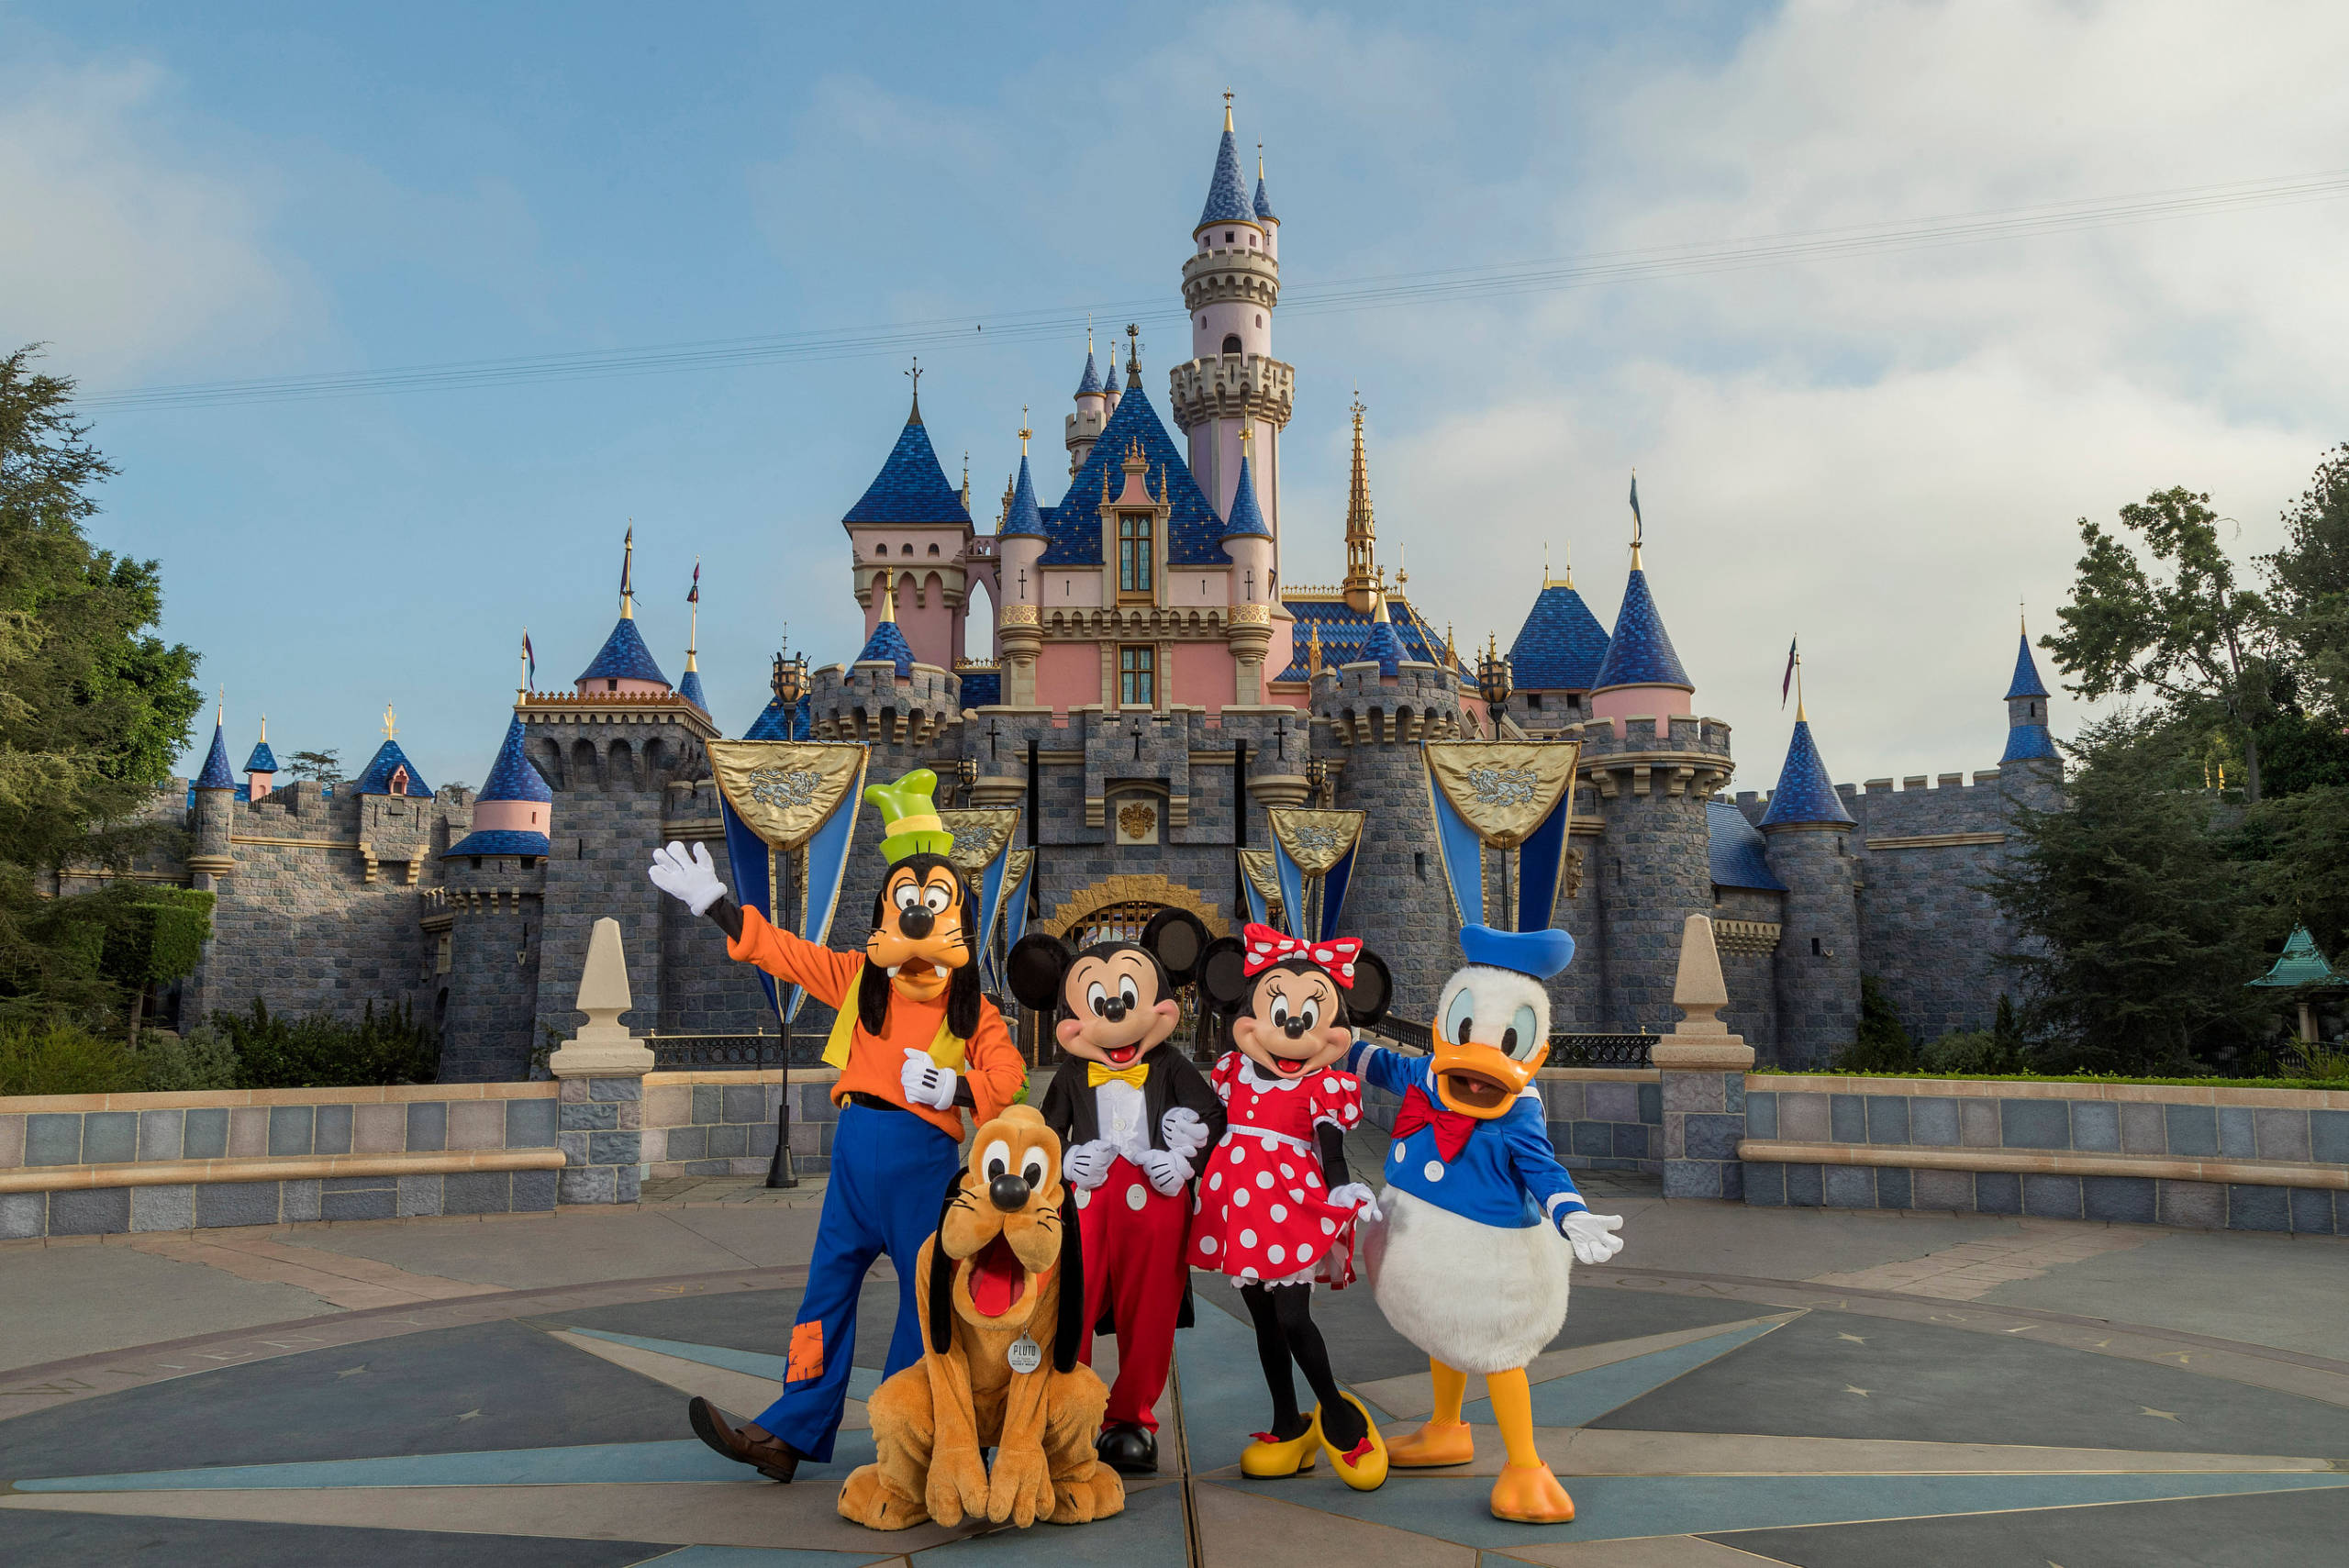 Disneyland ends its annual pass program after 40 years, citing pandemic uncertainty